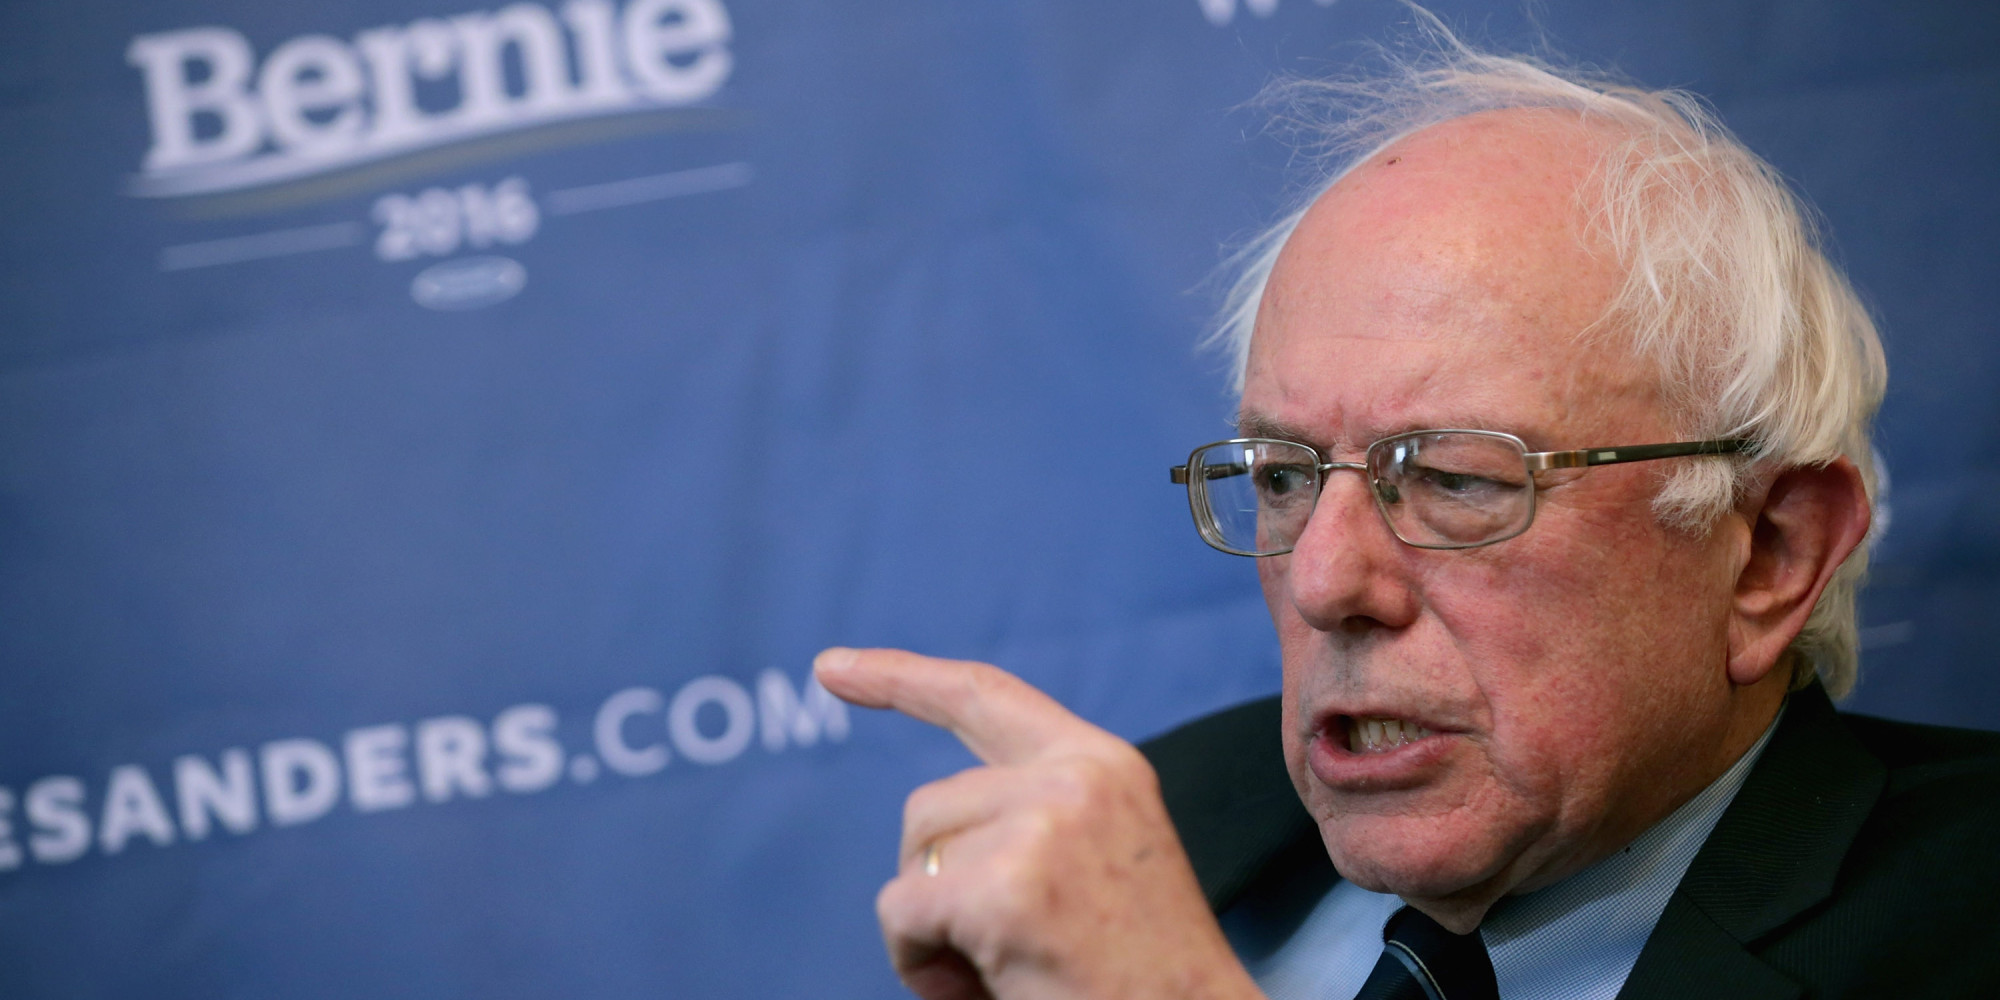 bernie sanders for president. bernie sanders will become president, despite rigged debate schedules, skewed polls, and clinton\u0027s \u0027inevitability\u0027 | huffpost for president